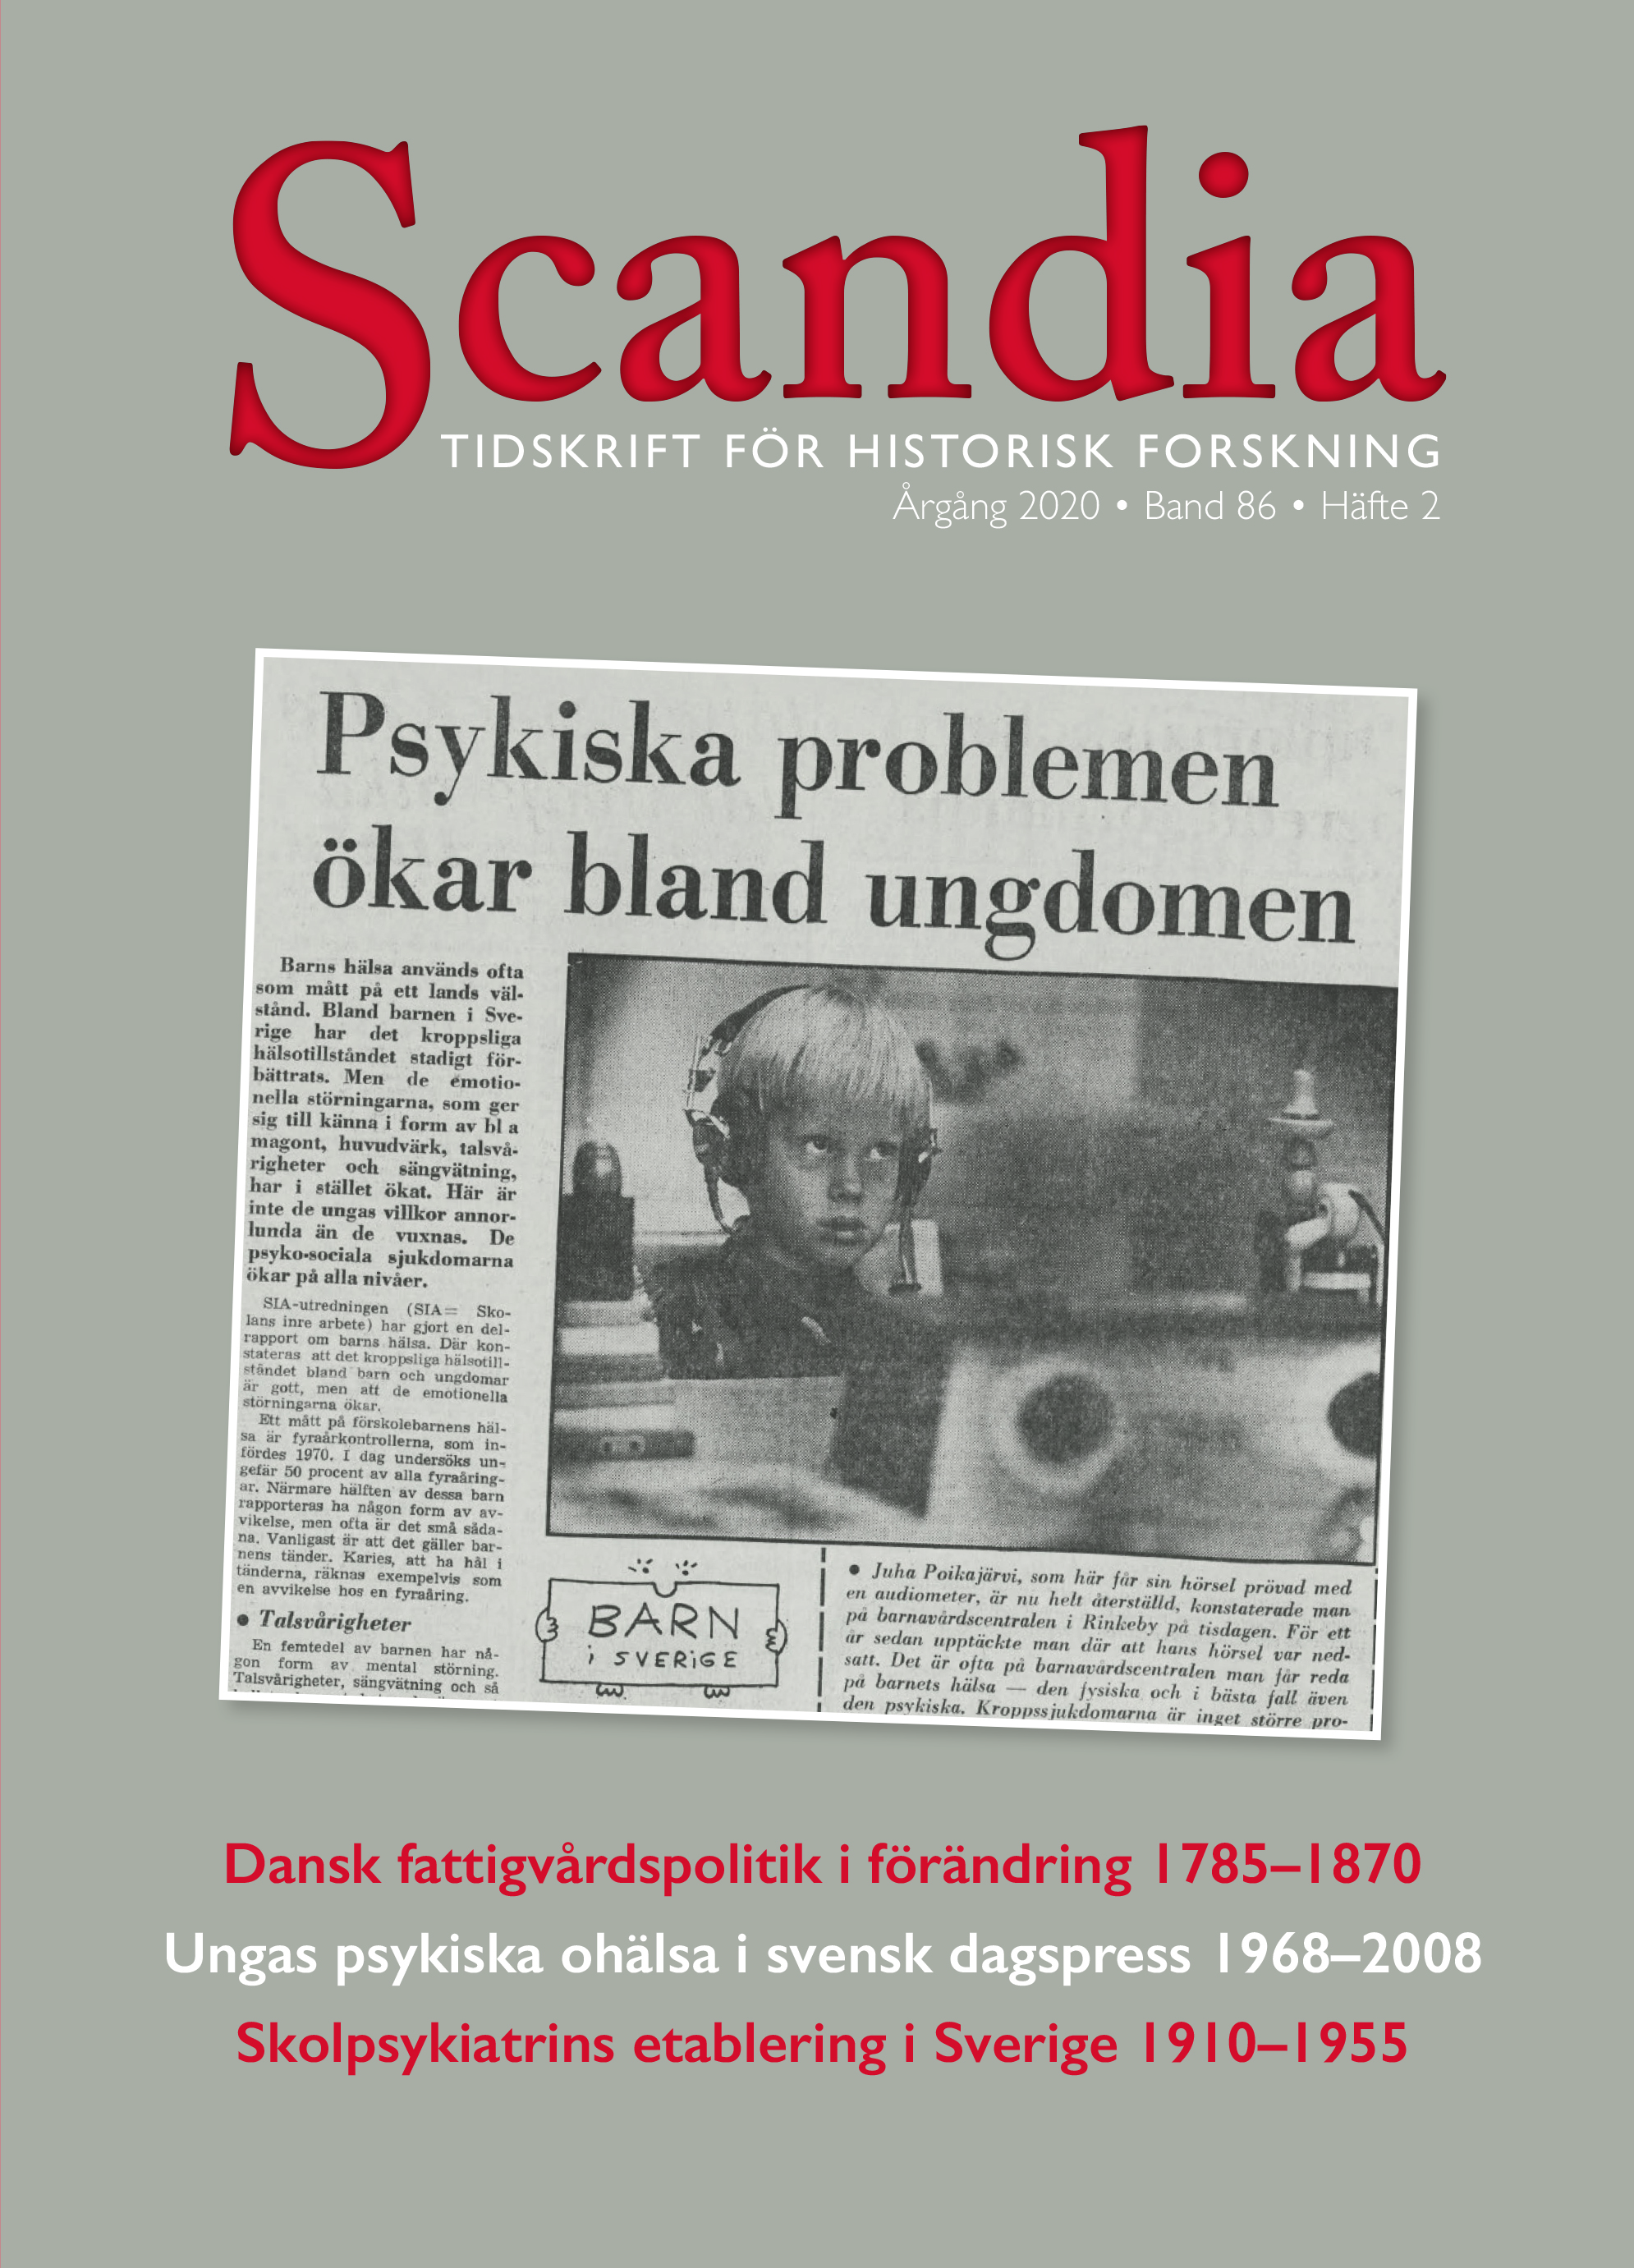 View Vol. 86 No. 2 (2020): Scandia